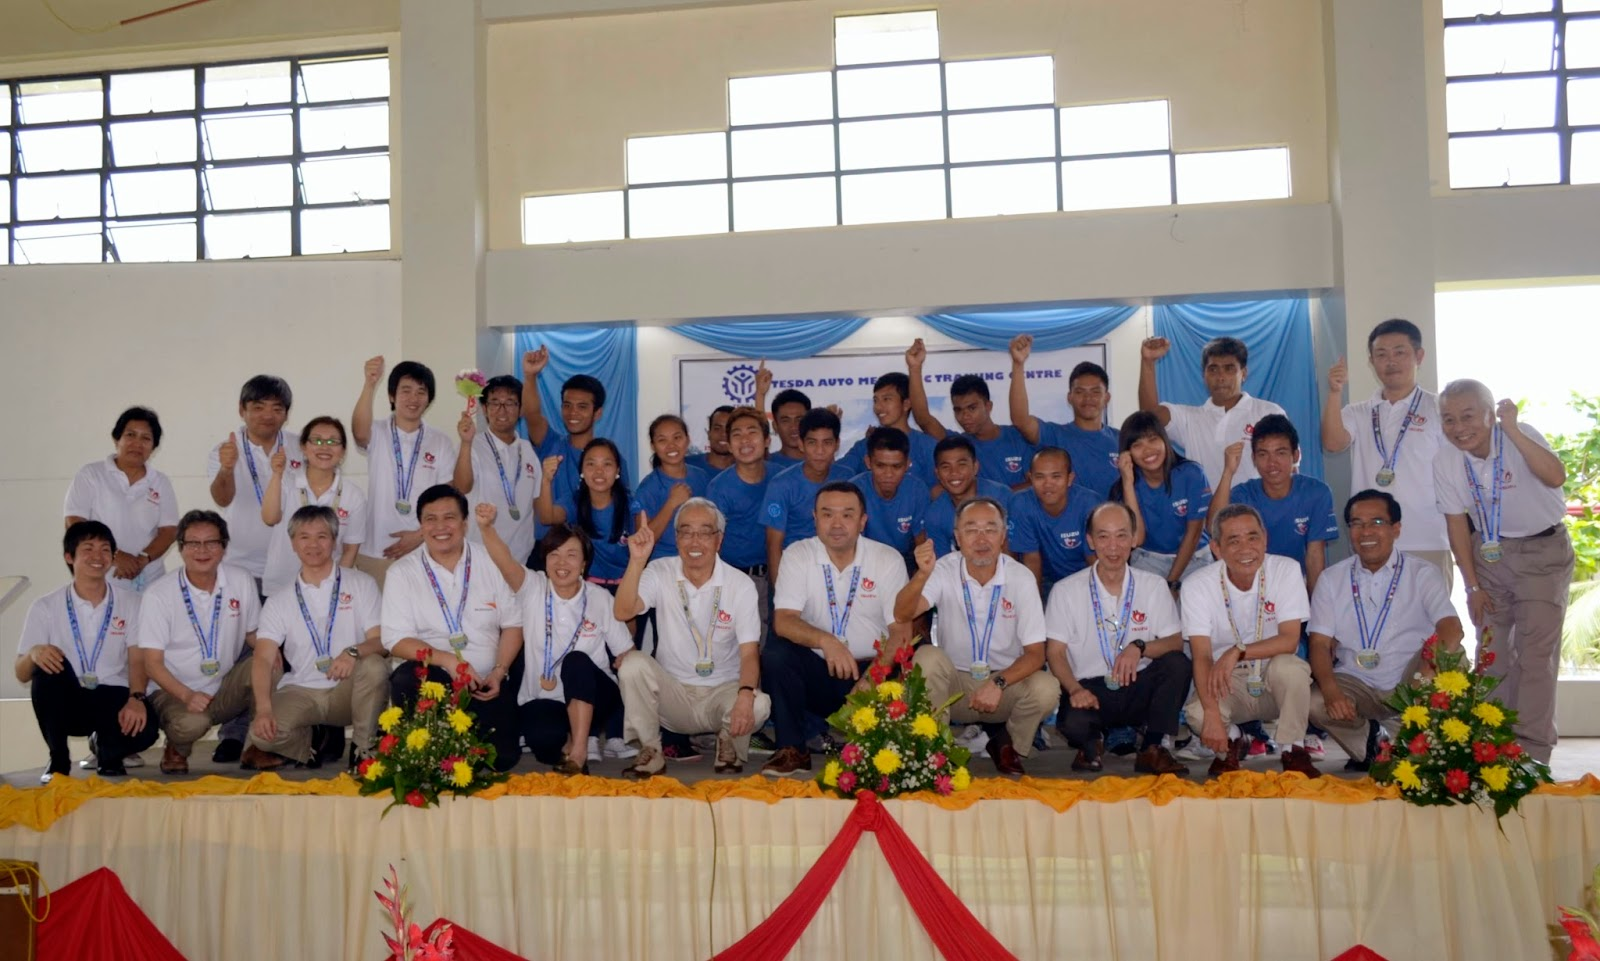 Isuzu Auto Mechanic Training Center in Tacloban